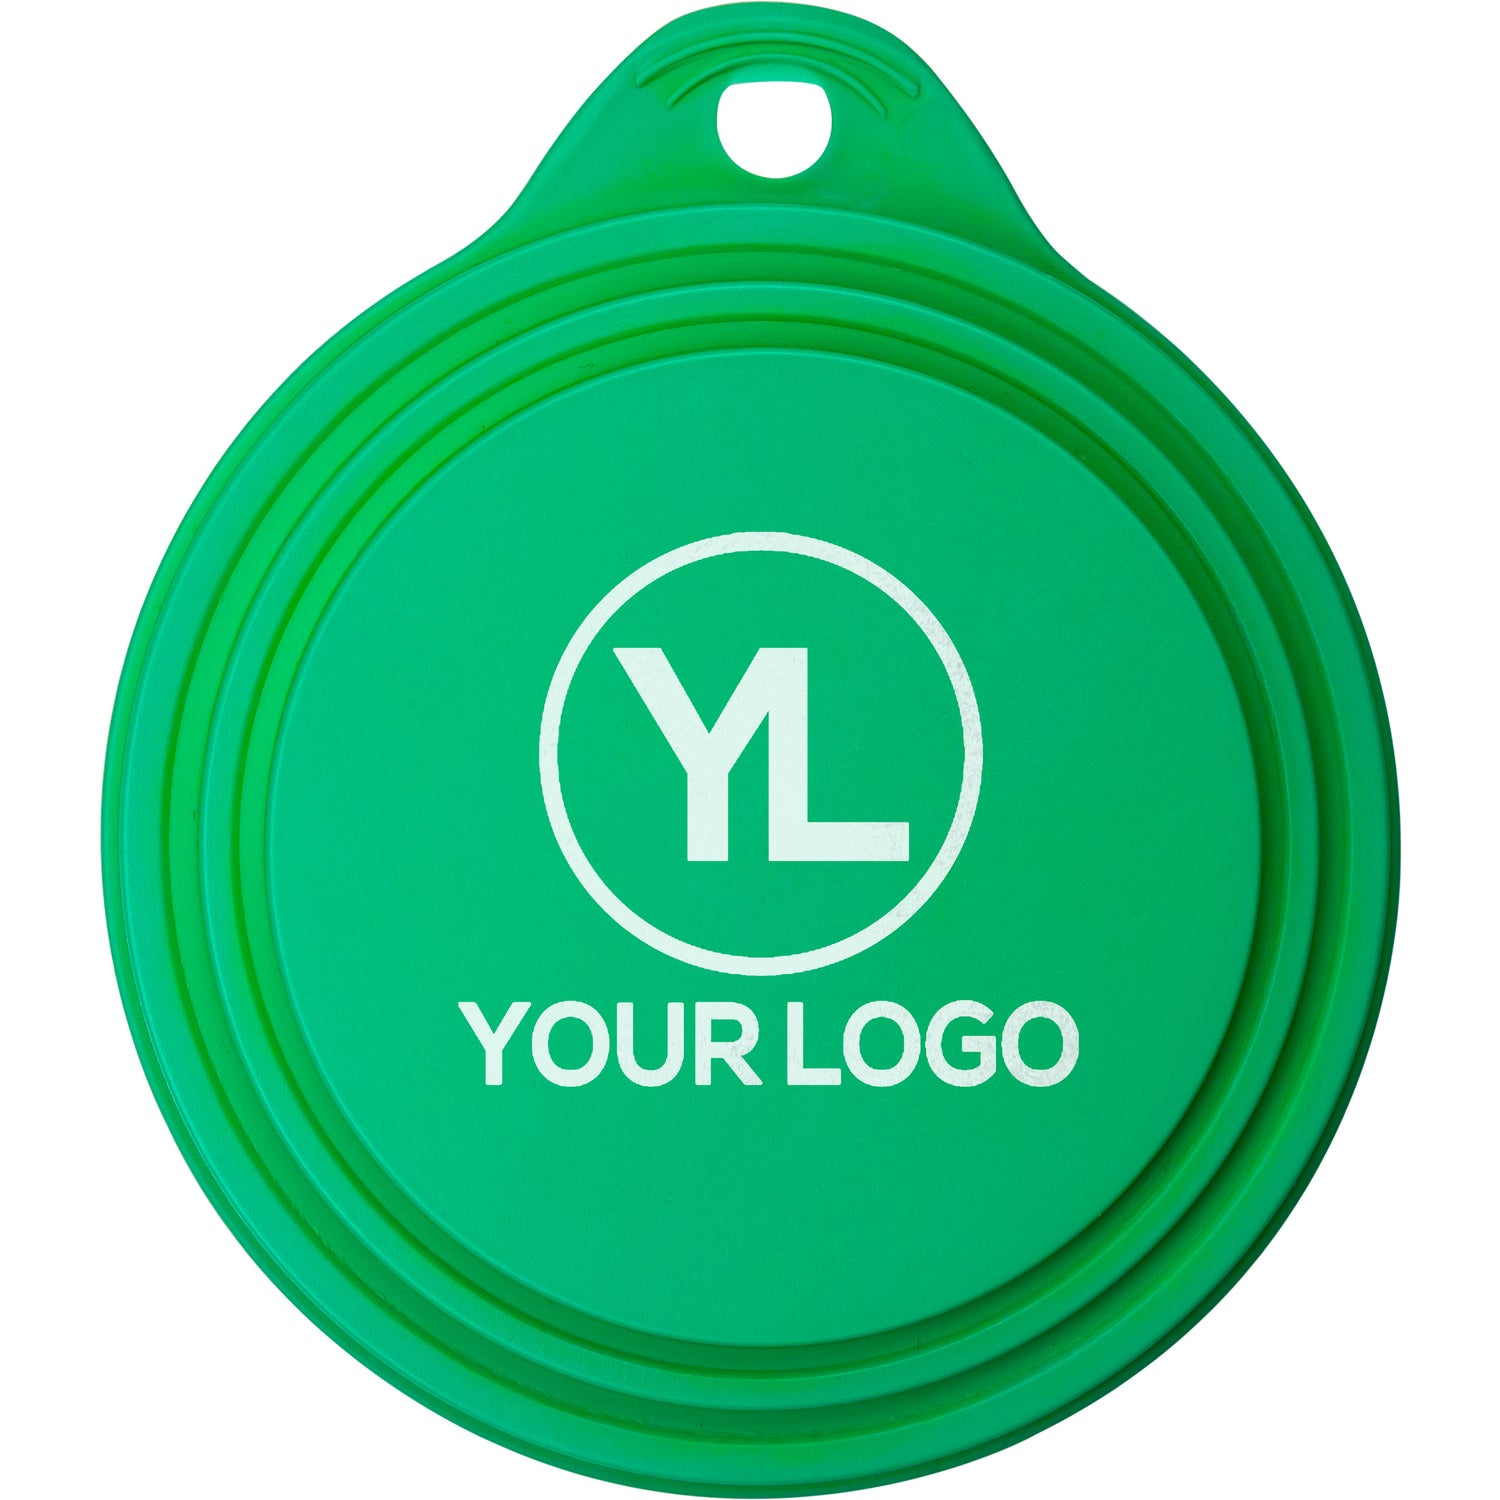 999a8c0a62a70 CLICK HERE to Order 3-Step Lids Printed with Your Logo for 51¢ Ea.!